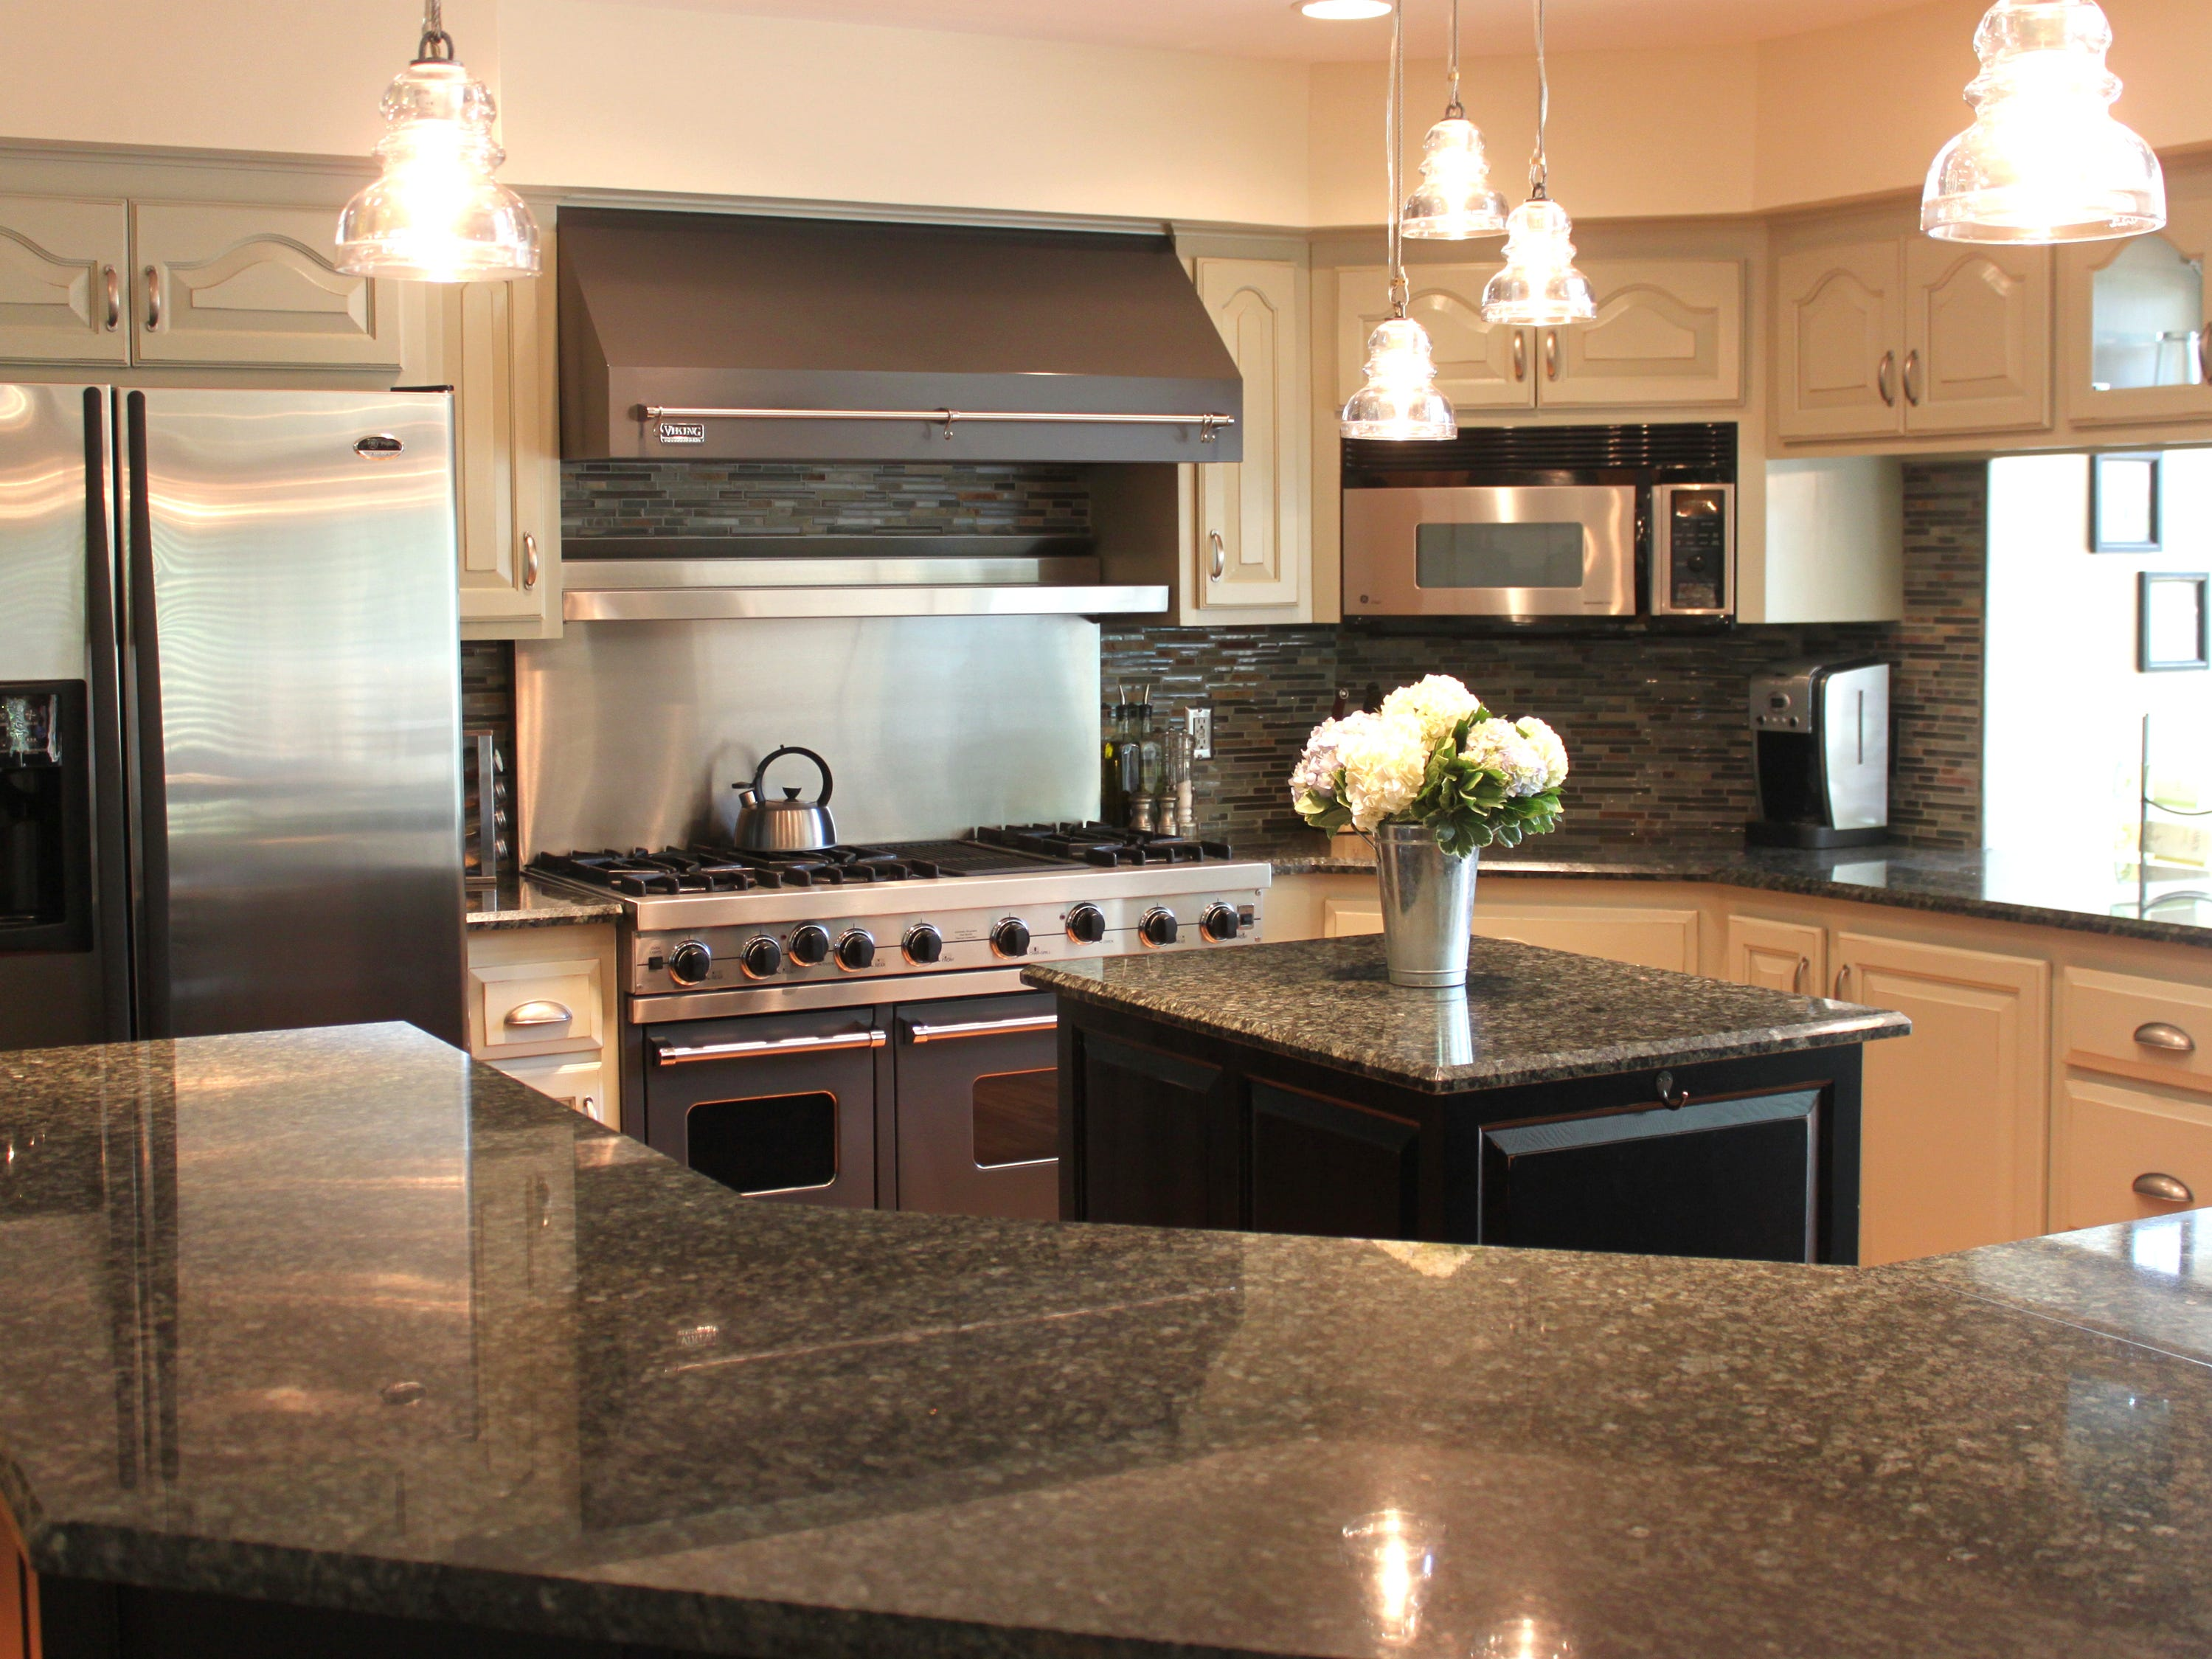 Sarah Timmer recently designed this kitchen update for a client, using pale sage cabinets.